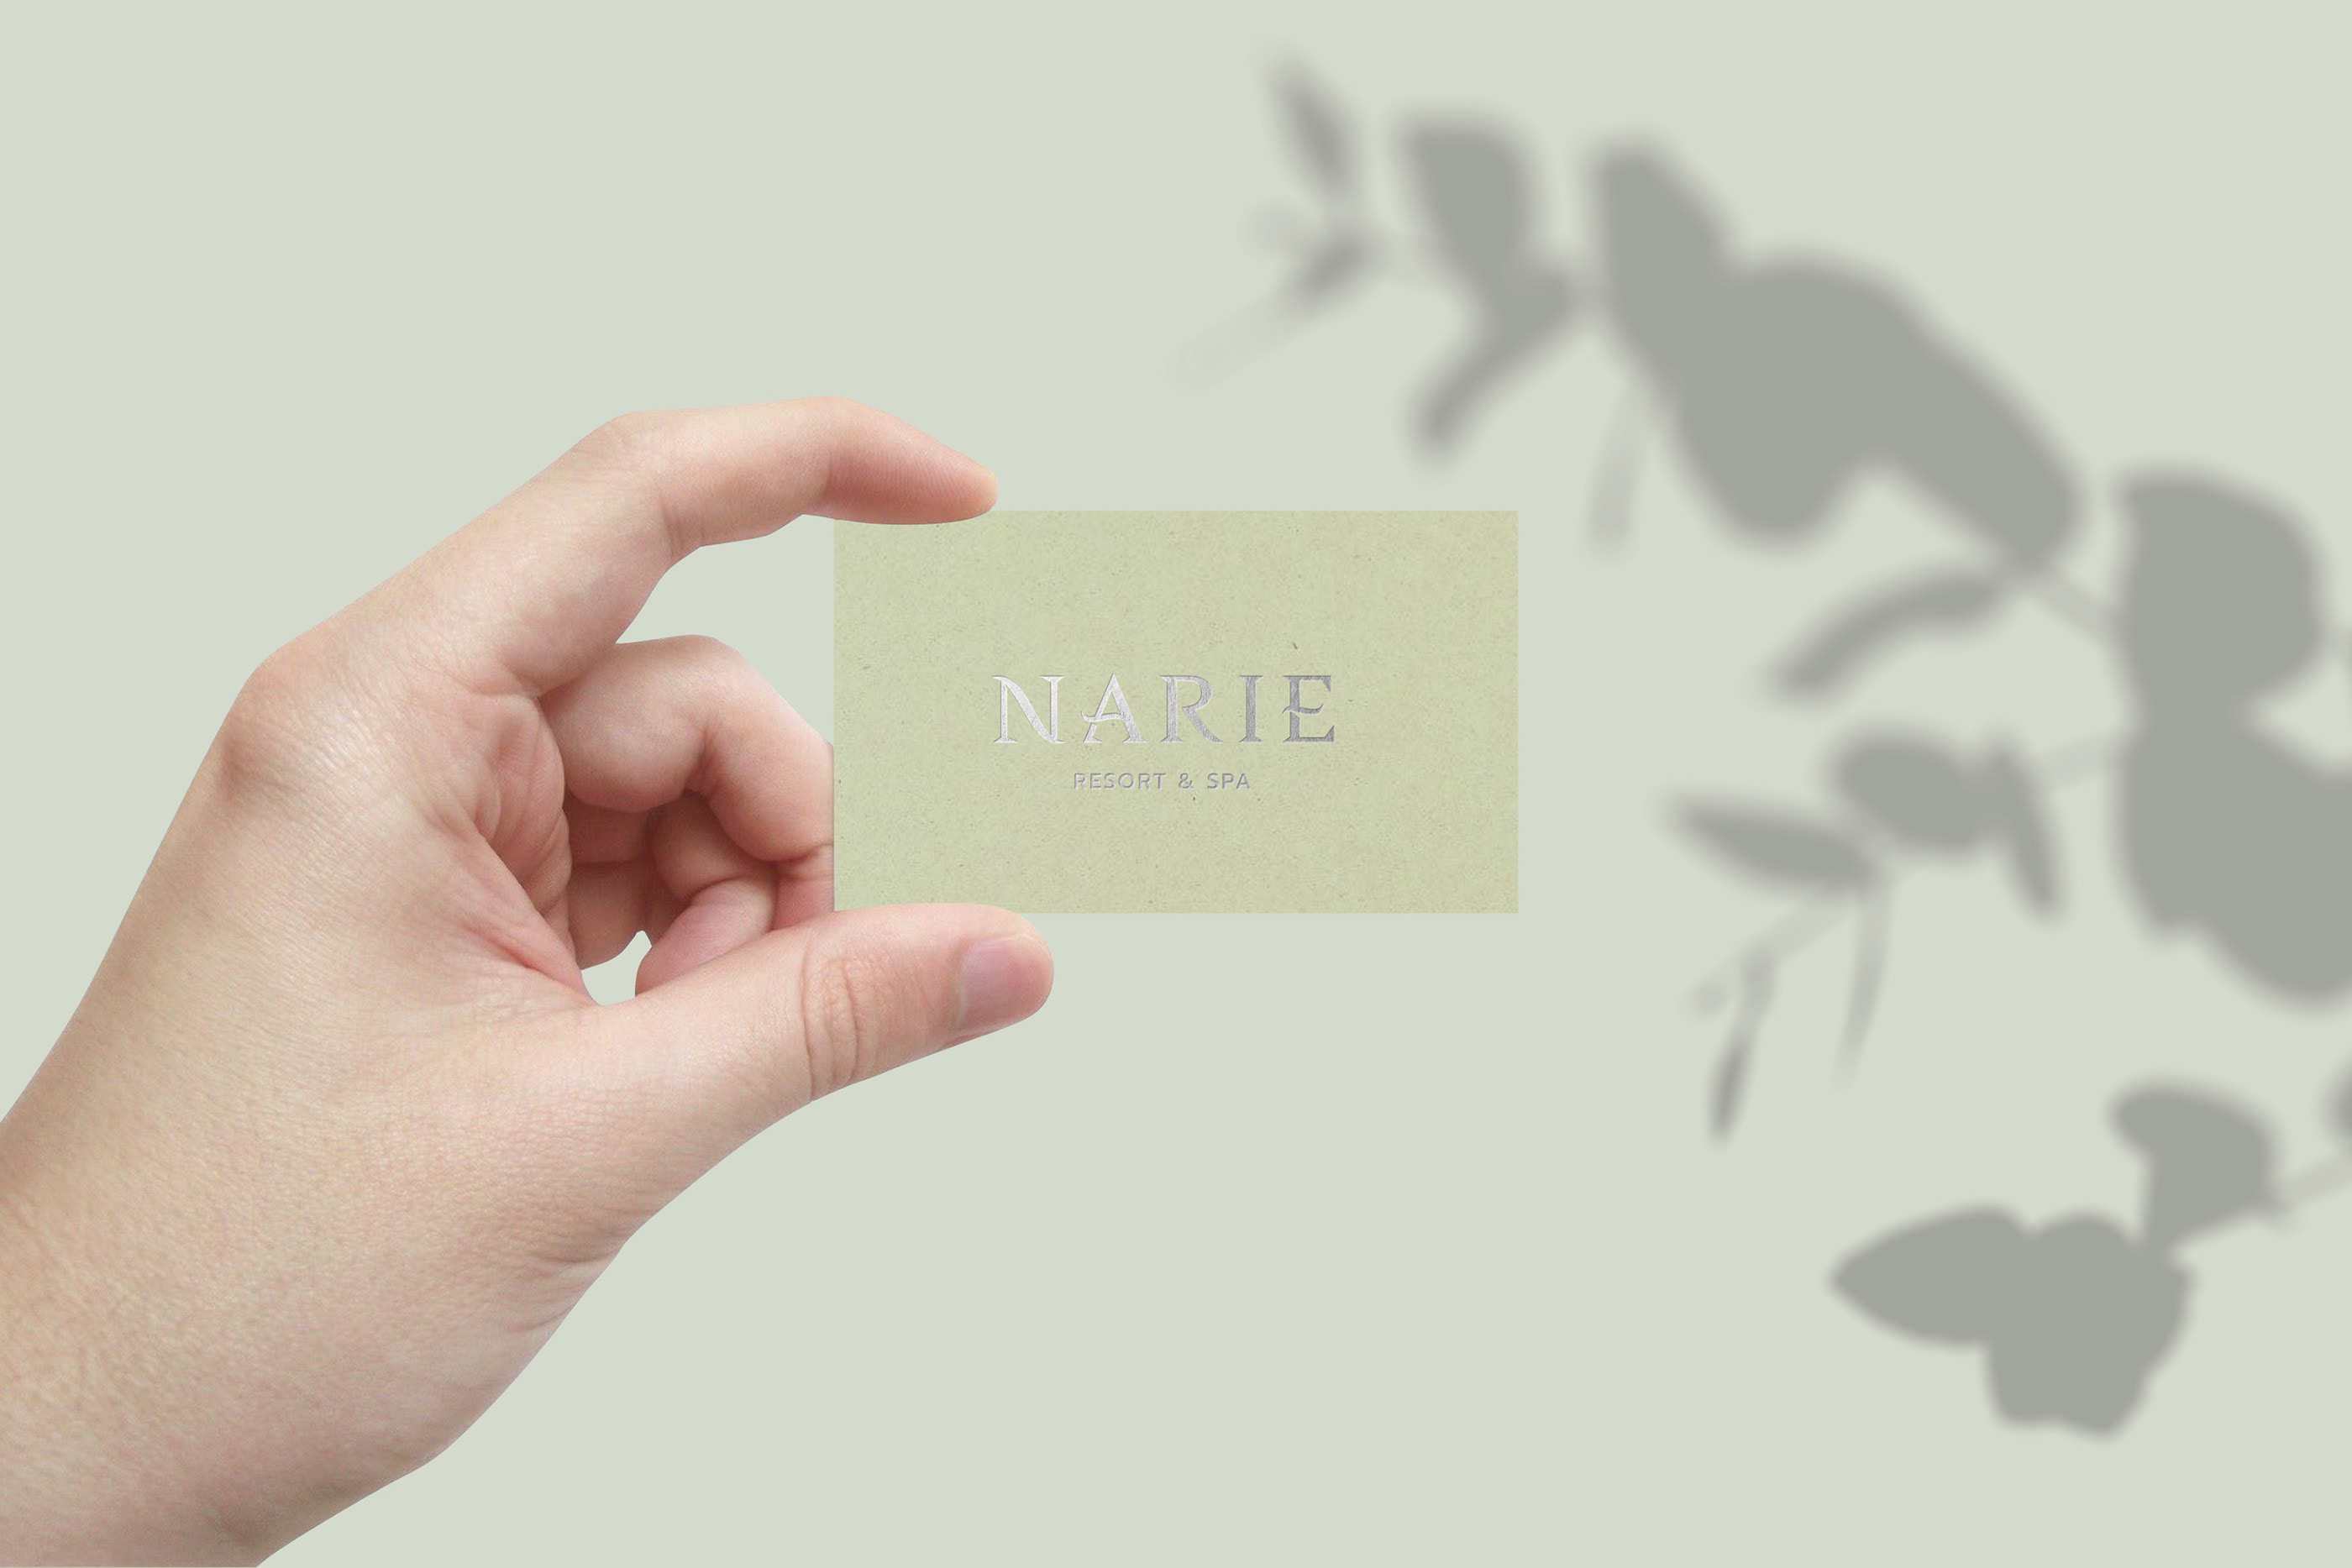 Narie Resort and Spa stationery printed on Crush Kiwi and Lavender